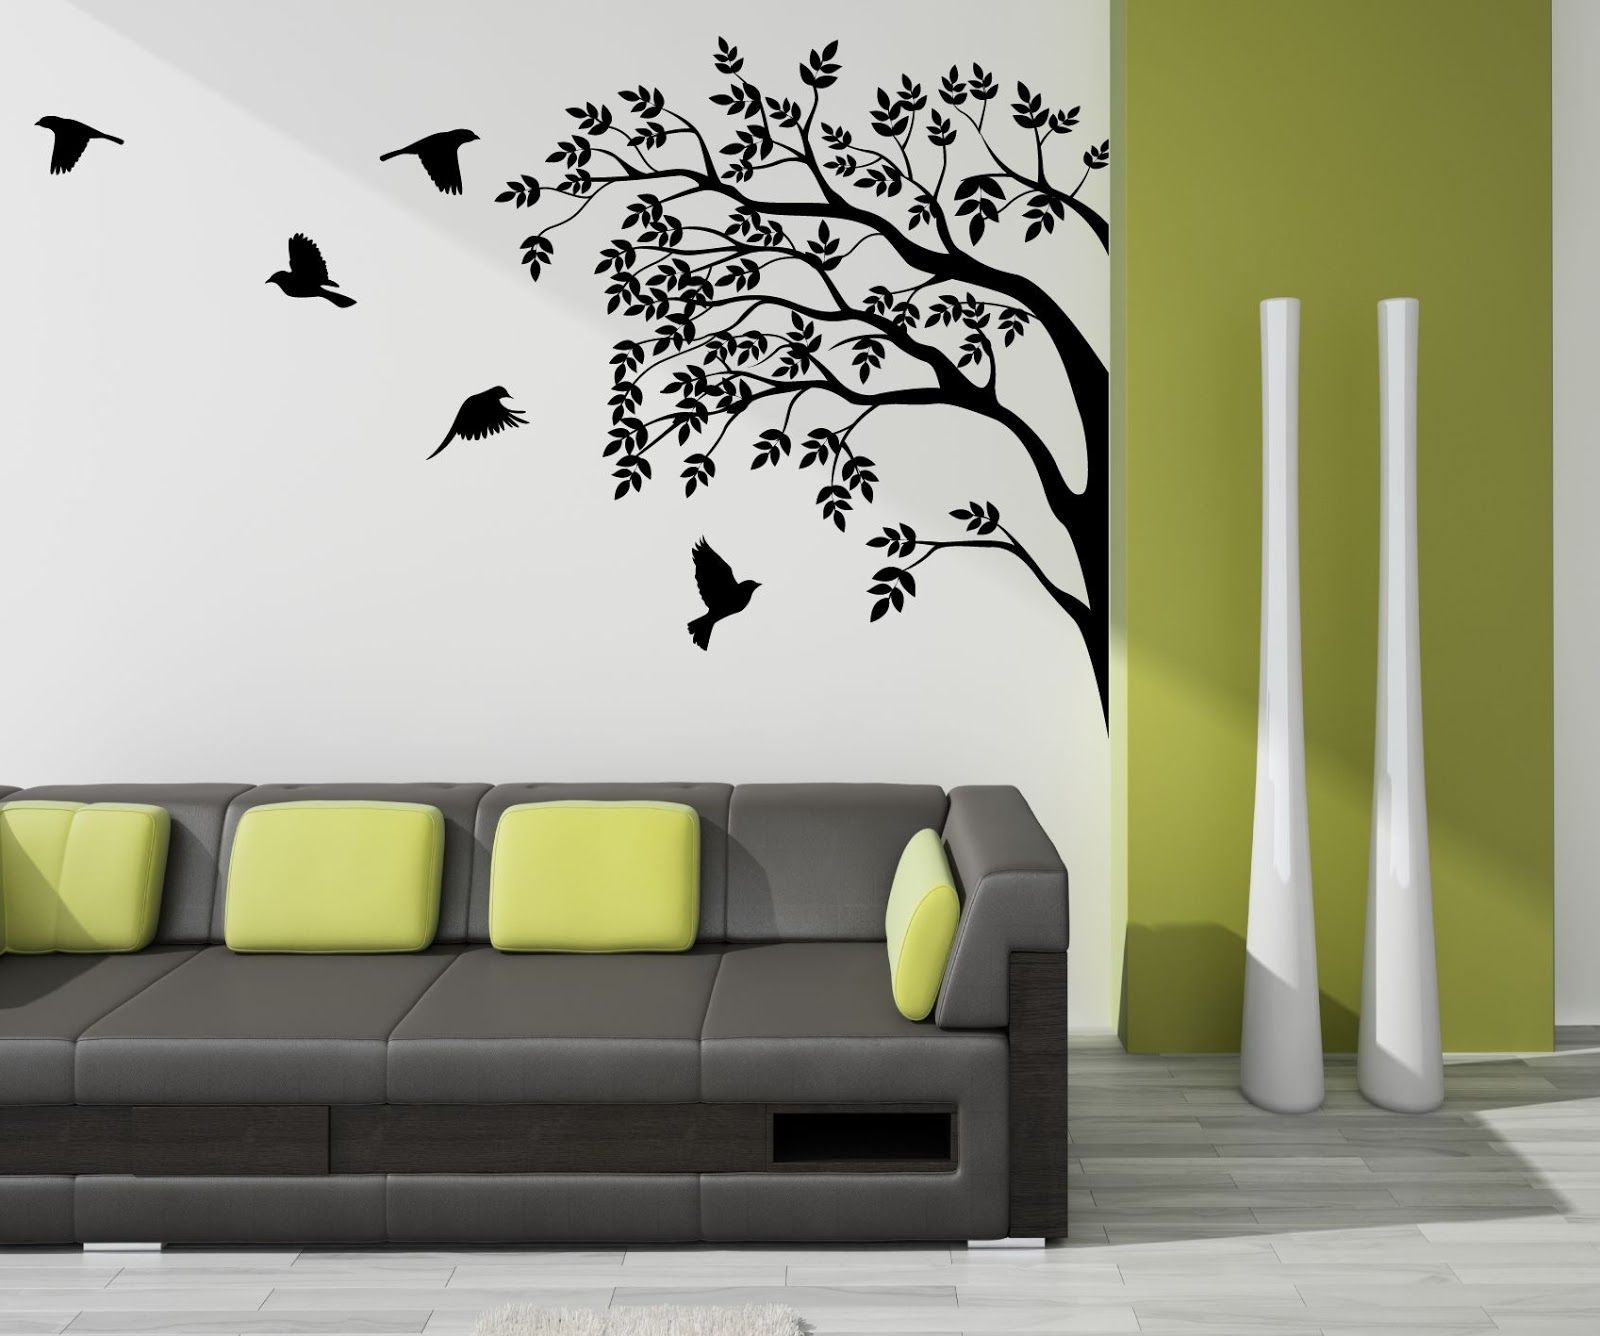 Decoration for Your Home Interior With Stunning Tree Wall Art